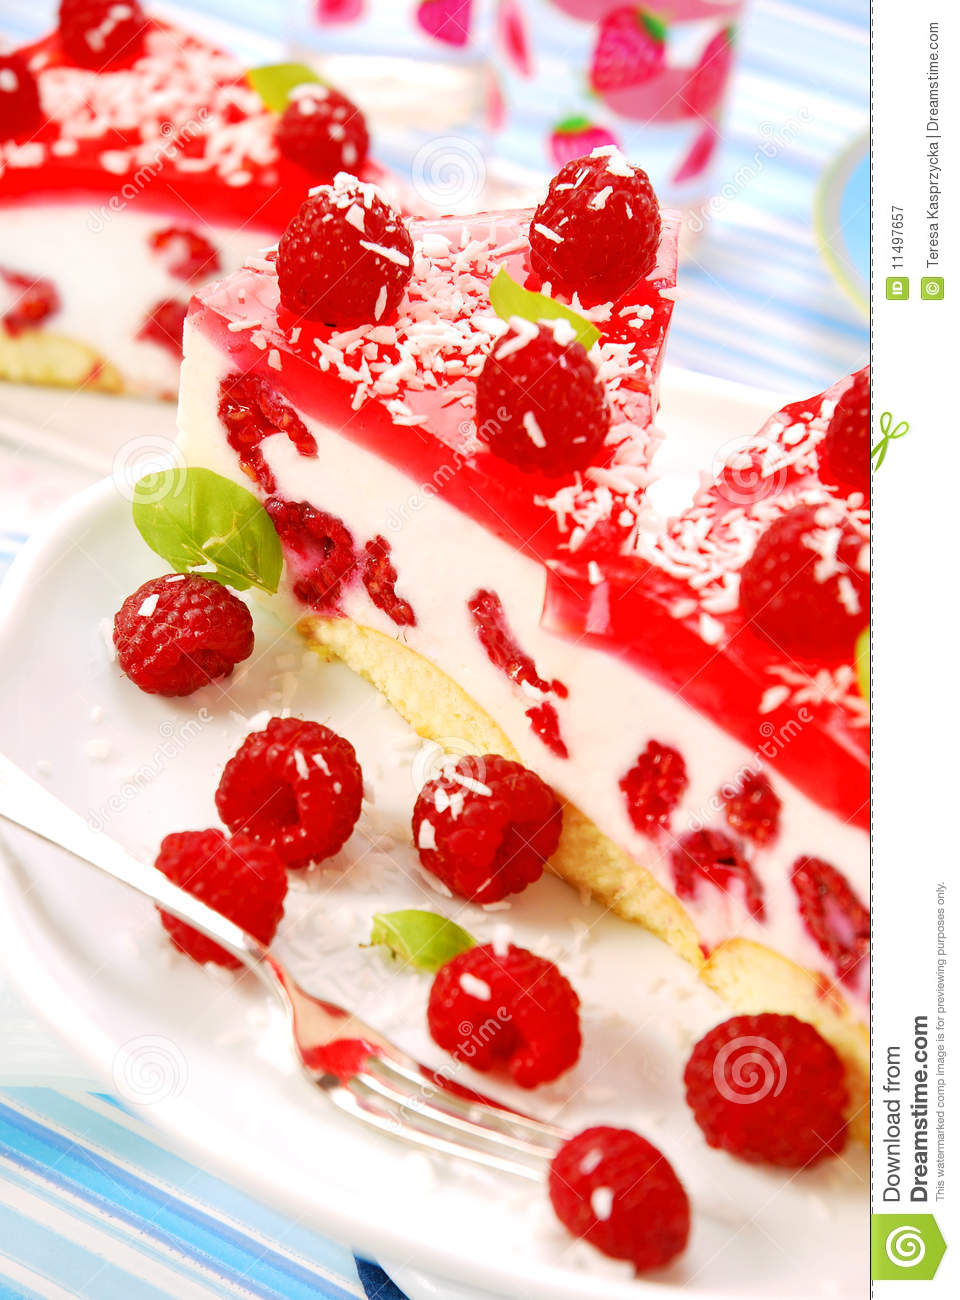 Cheese cake with jelly and raspberry